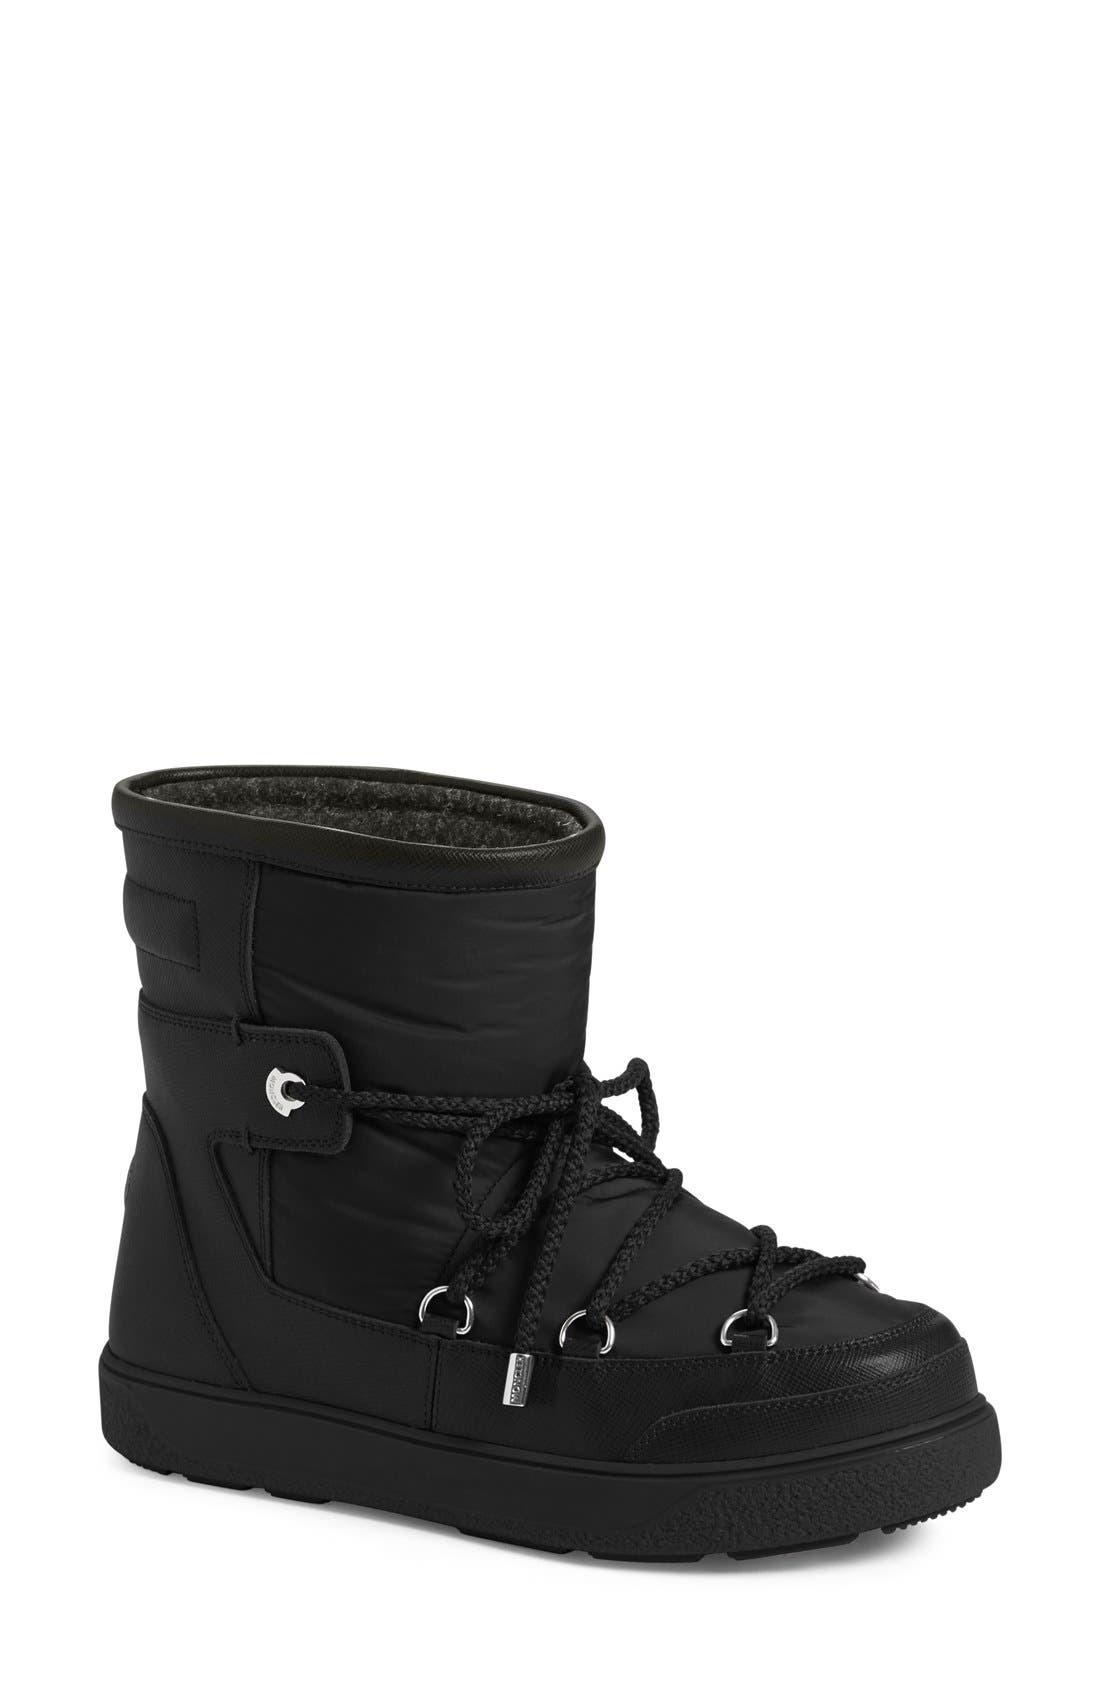 MONCLER 'New Fanny' Lace Up Ankle Boot